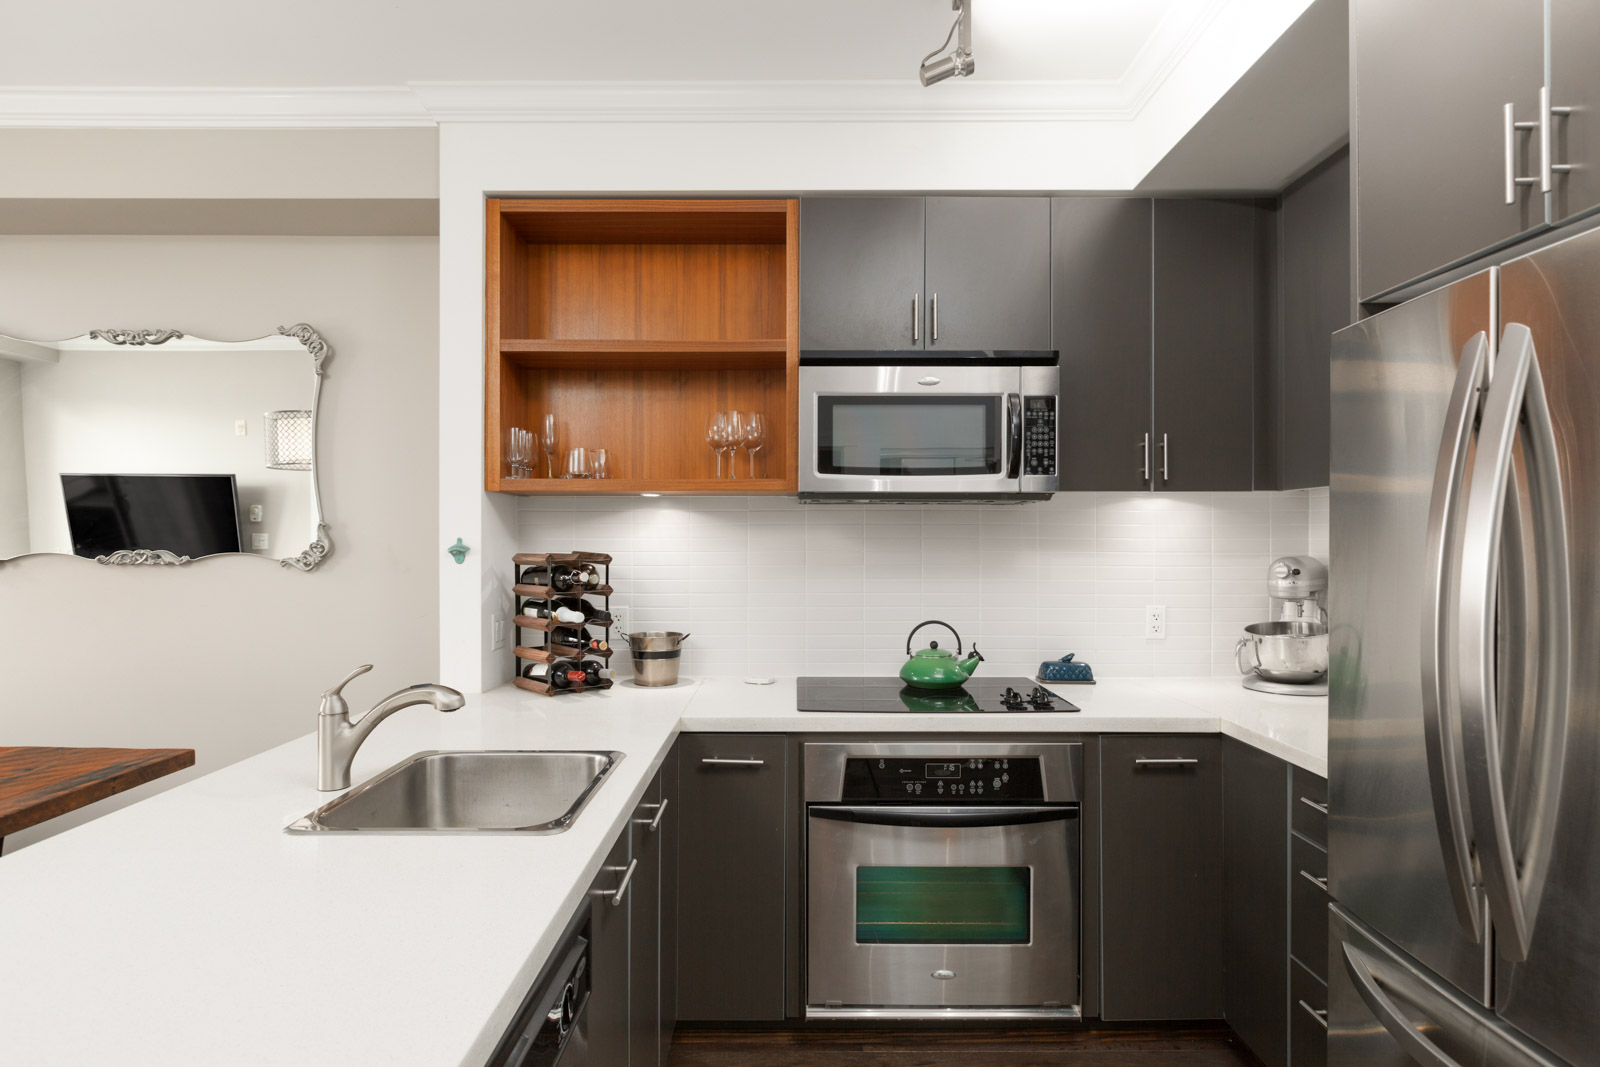 Modern kitchen with stainless steel fridge, sink, oven, and microwave with granite countertops and storage cabinets in a rental condo in East Vancouver offered by Birds Nest Properties